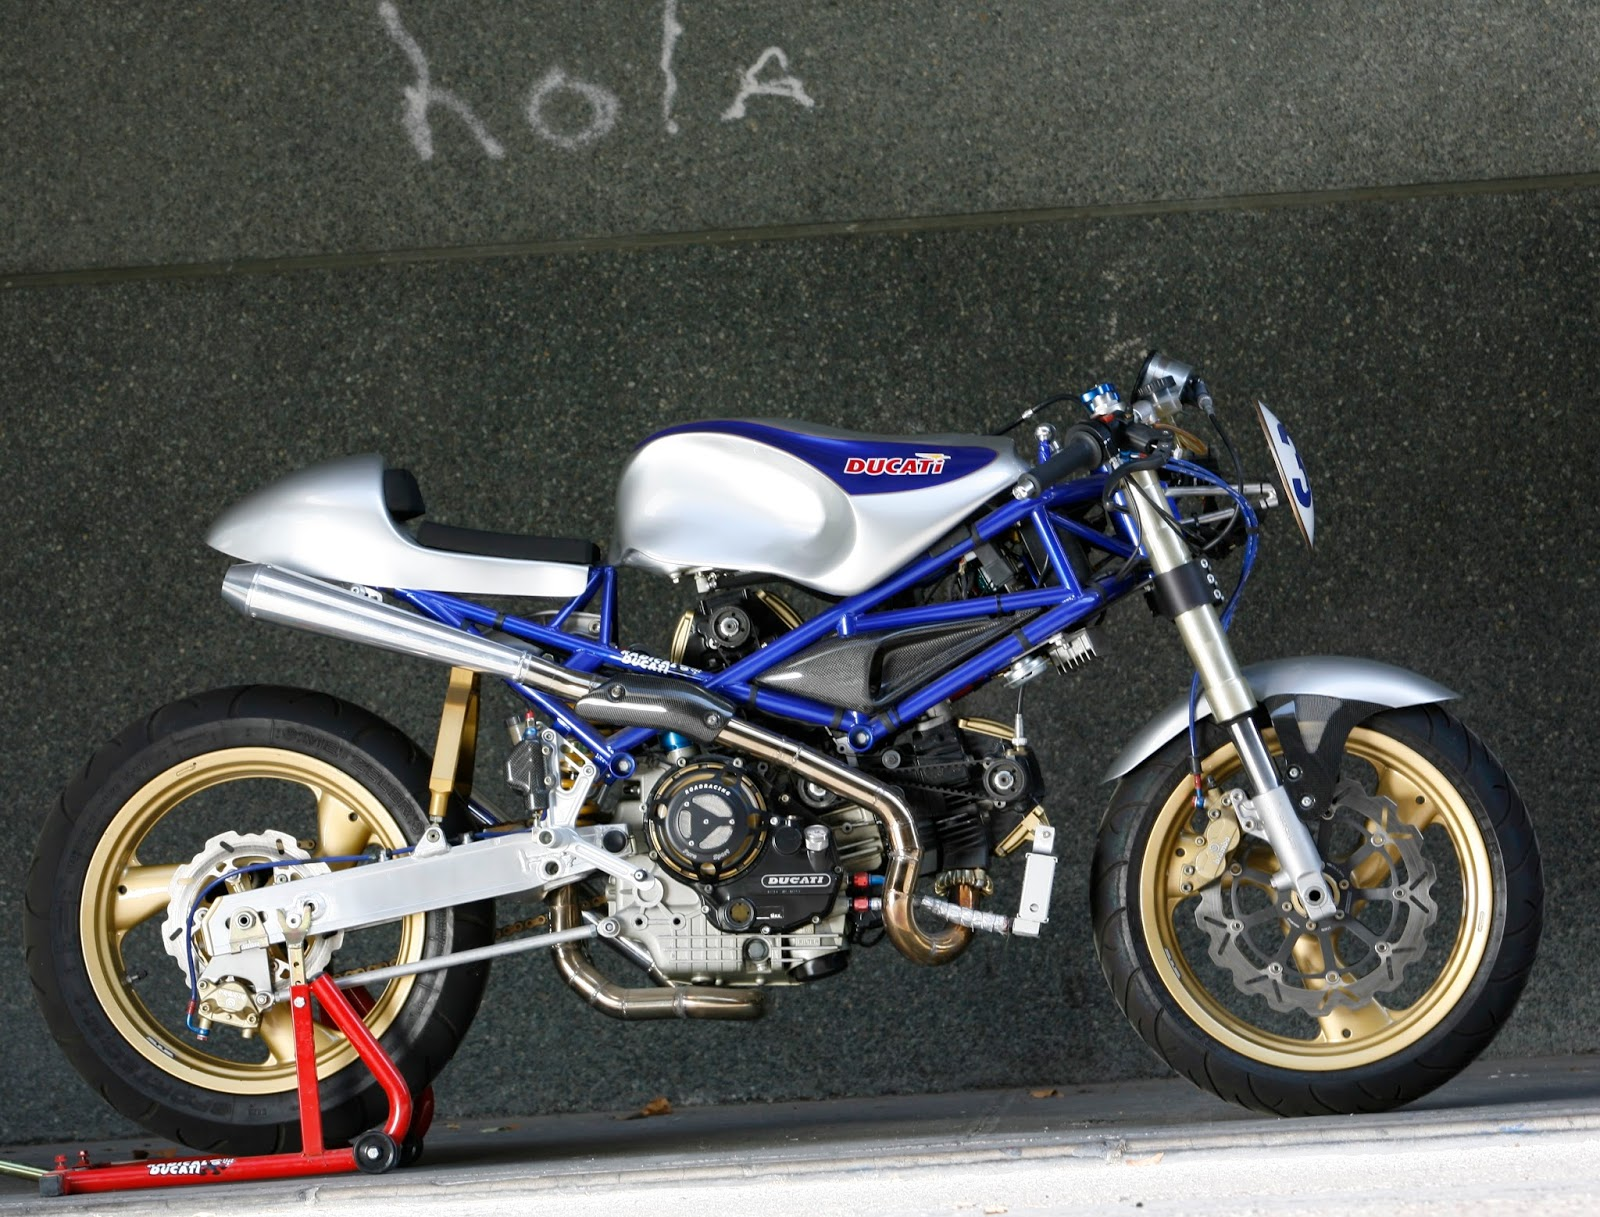 hight resolution of the old blue making of http www radicalducati com index php page old blue